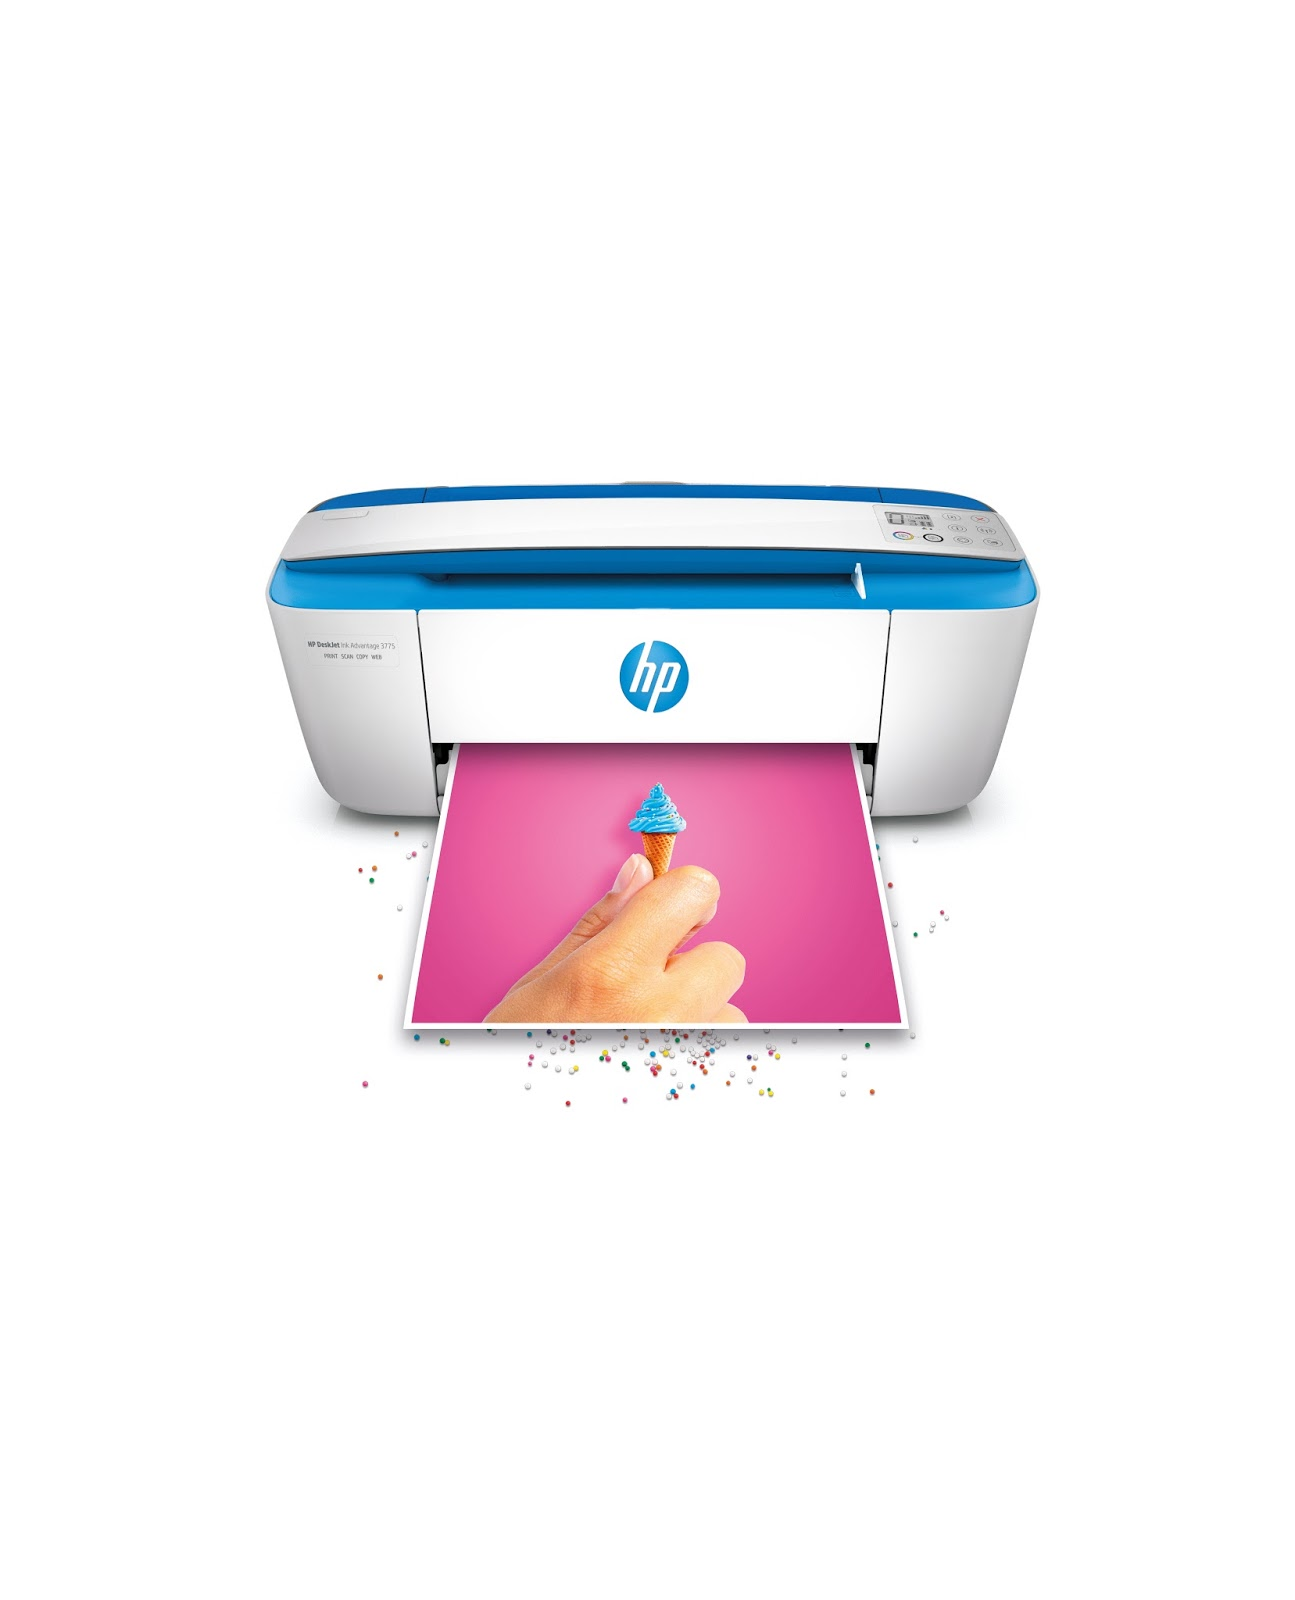 Hp Ink Advantage Printer Promo Clea Banal Deskjet 4675 All In One This Summer Let Your Childs Creativity Shine Brighter With The You Can Easily Enjoy Vibrant And Quality Printouts